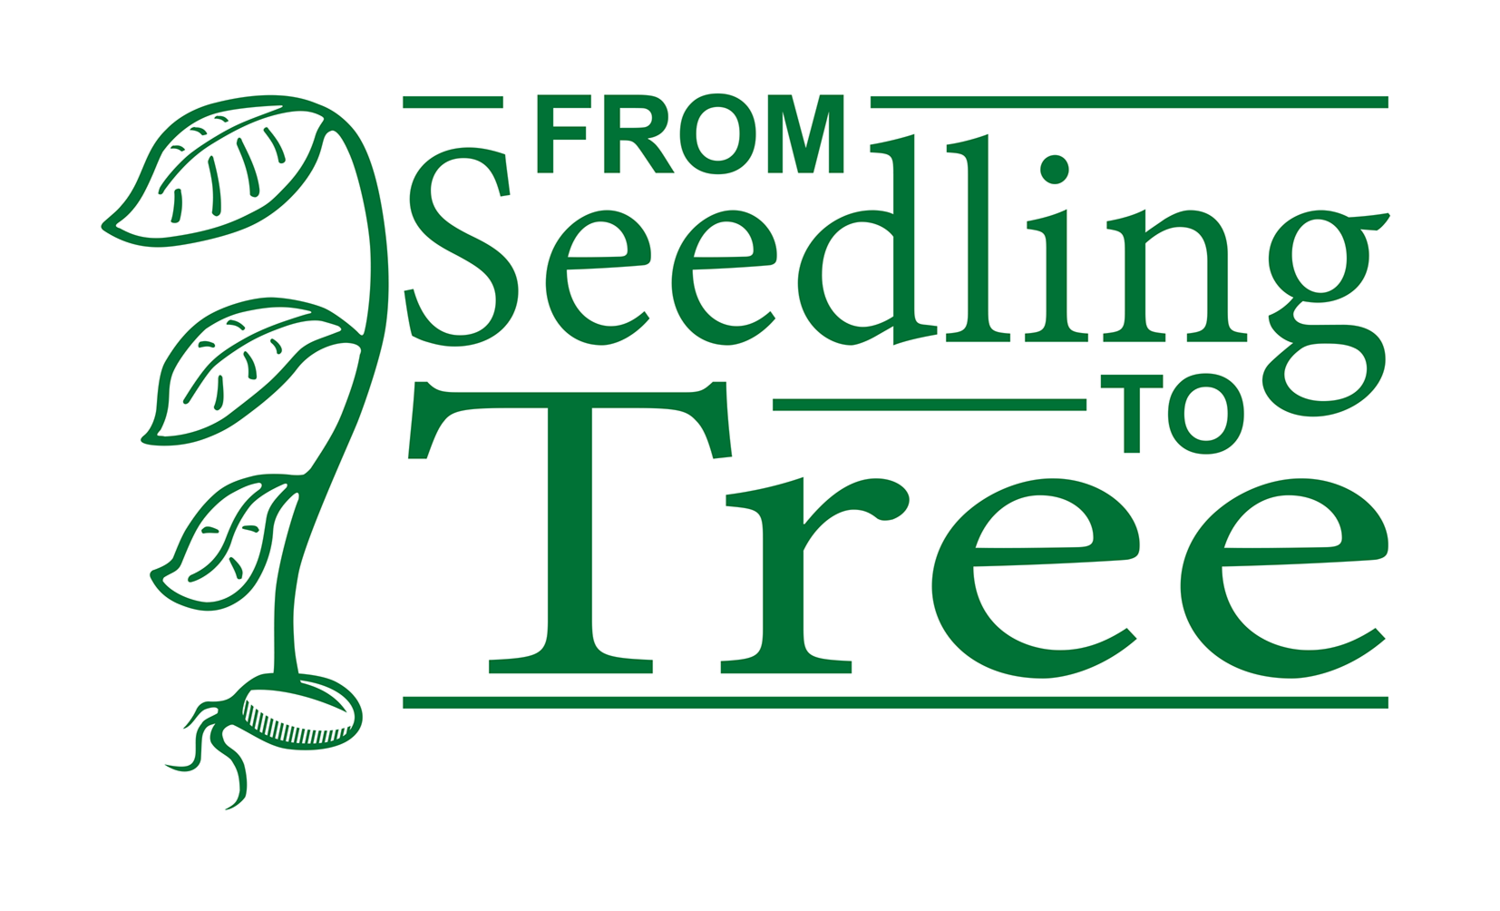 From Seedling to Tree